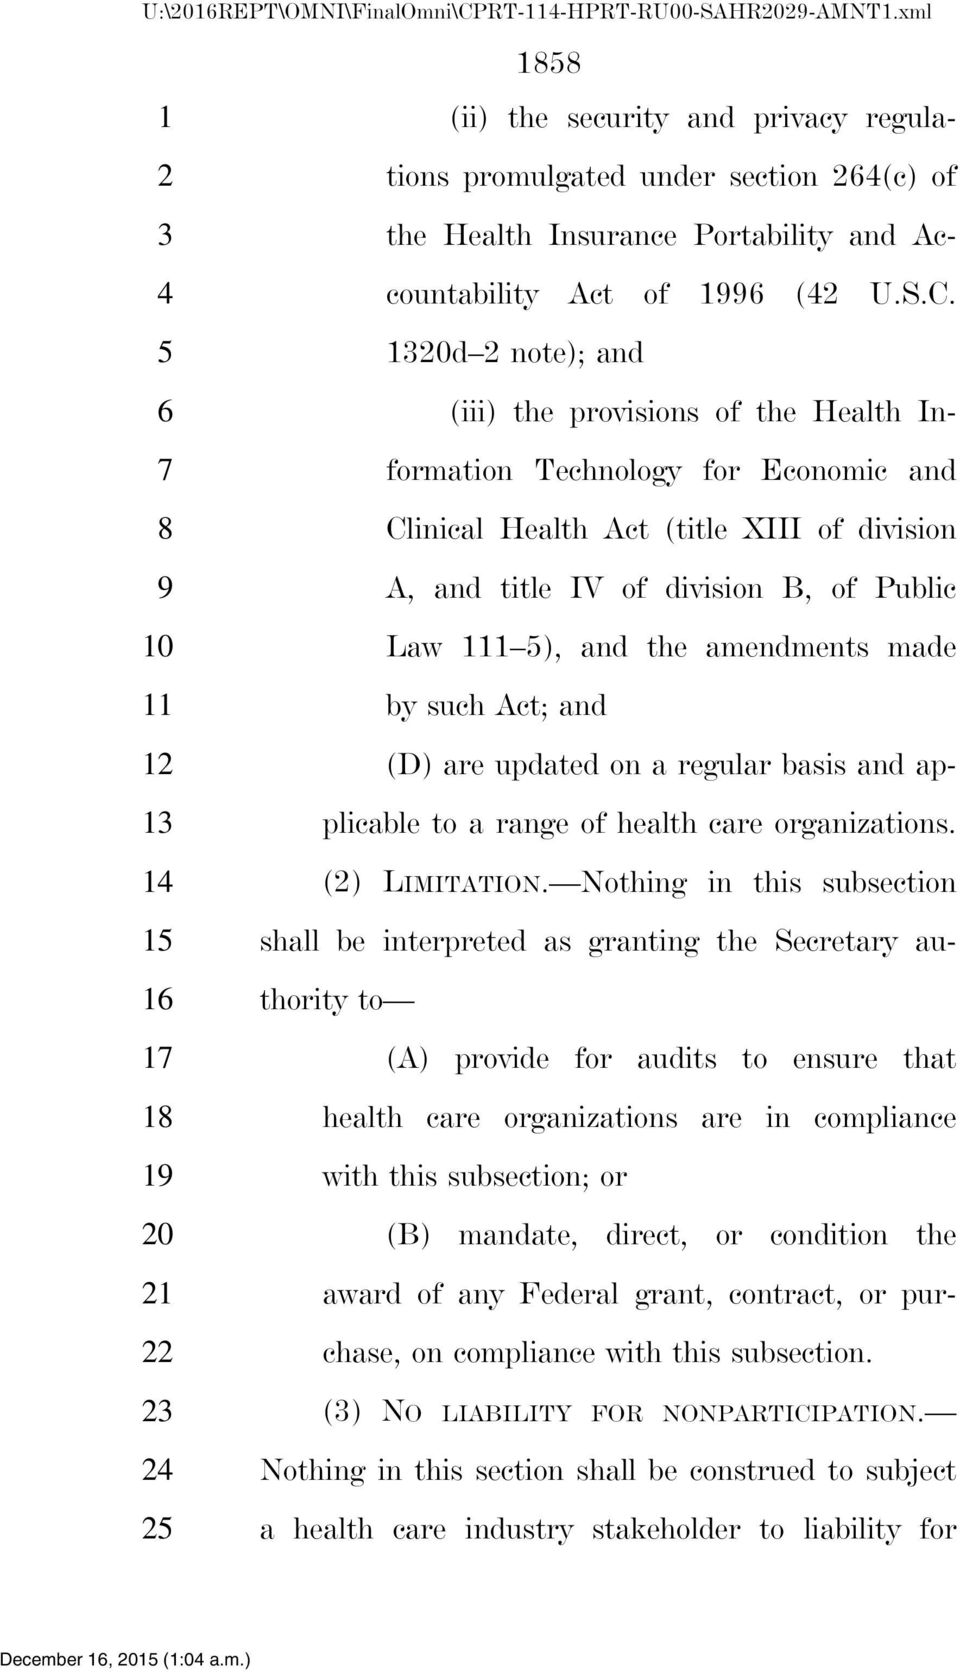 d note); and (iii) the provisions of the Health Information Technology for Economic and Clinical Health Act (title XIII of division A, and title IV of division B, of Public Law ), and the amendments